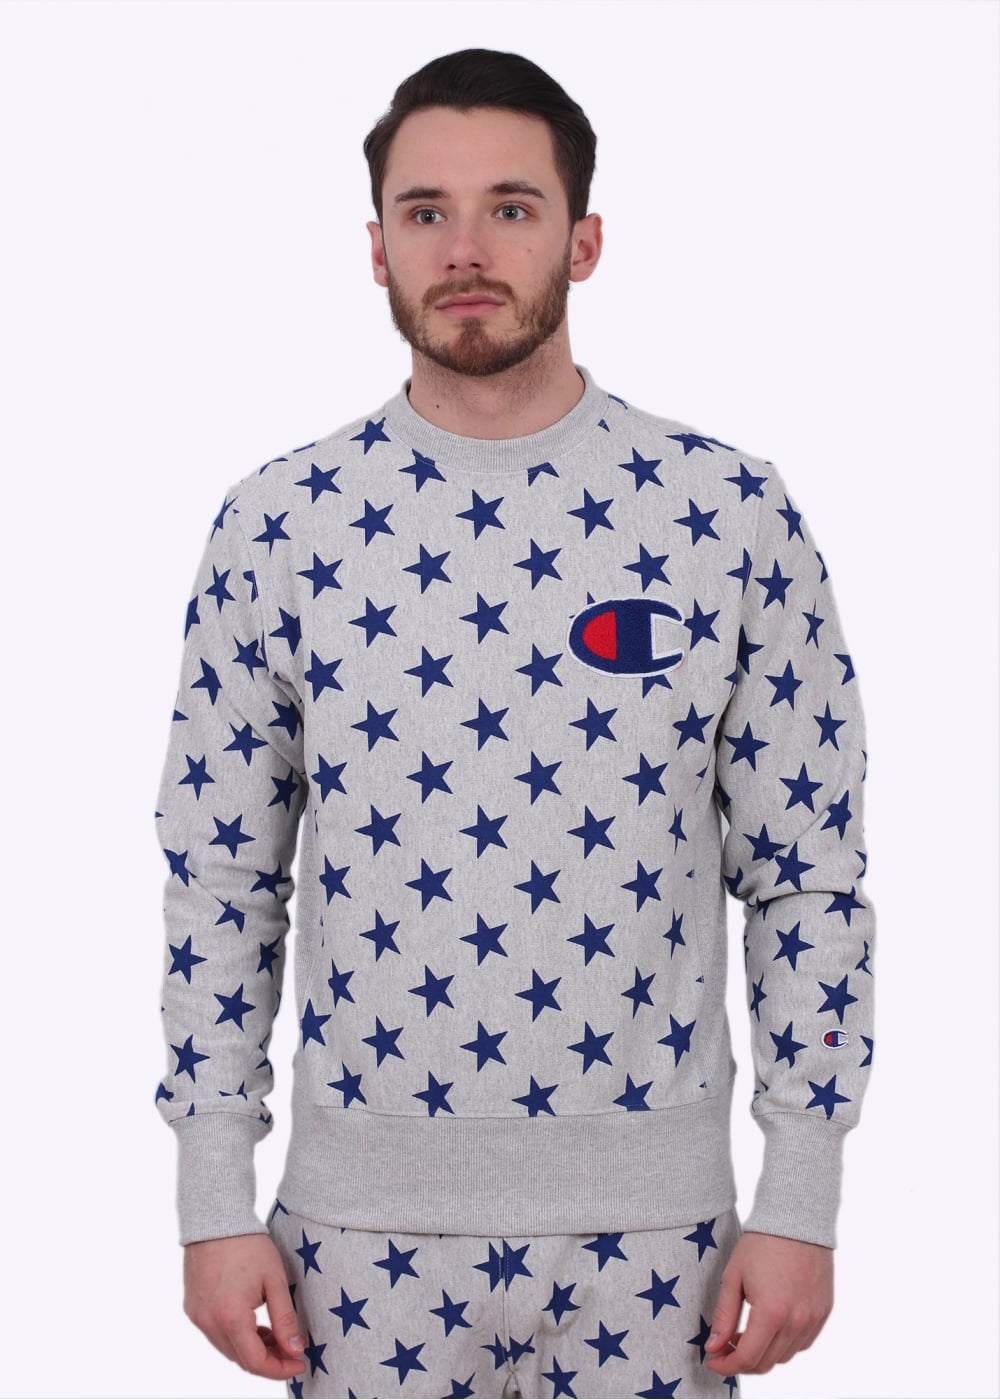 Star Sweater Reverse Weave Grey Champion Allover Print yPmN8vn0wO